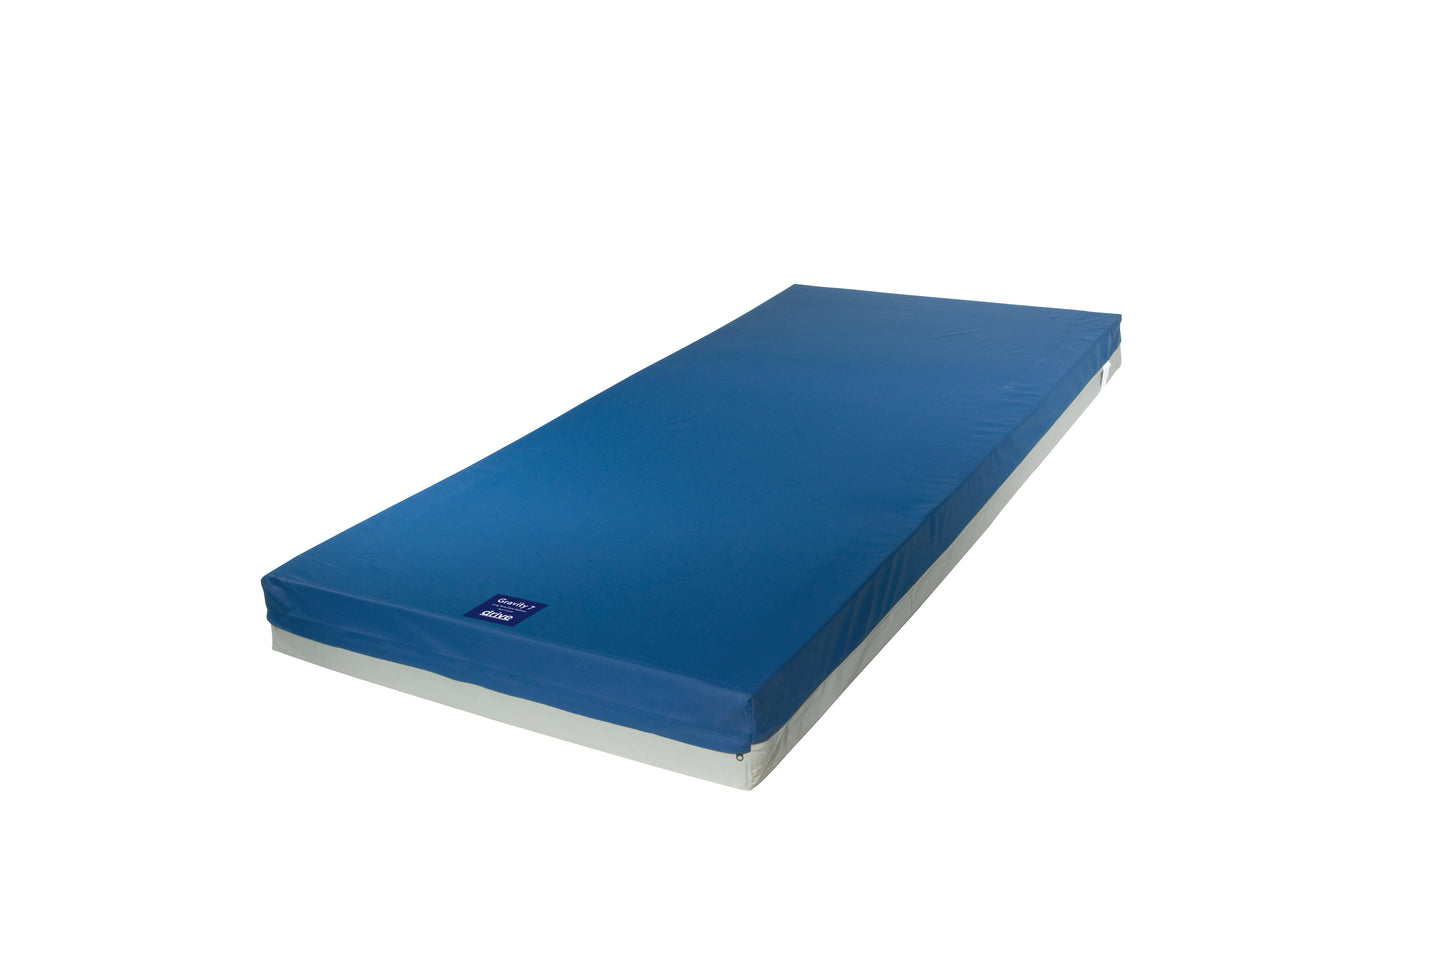 Drive Gravity 7 Long Term Care Pressure Redistribution Mattress- No Cut Out- 80